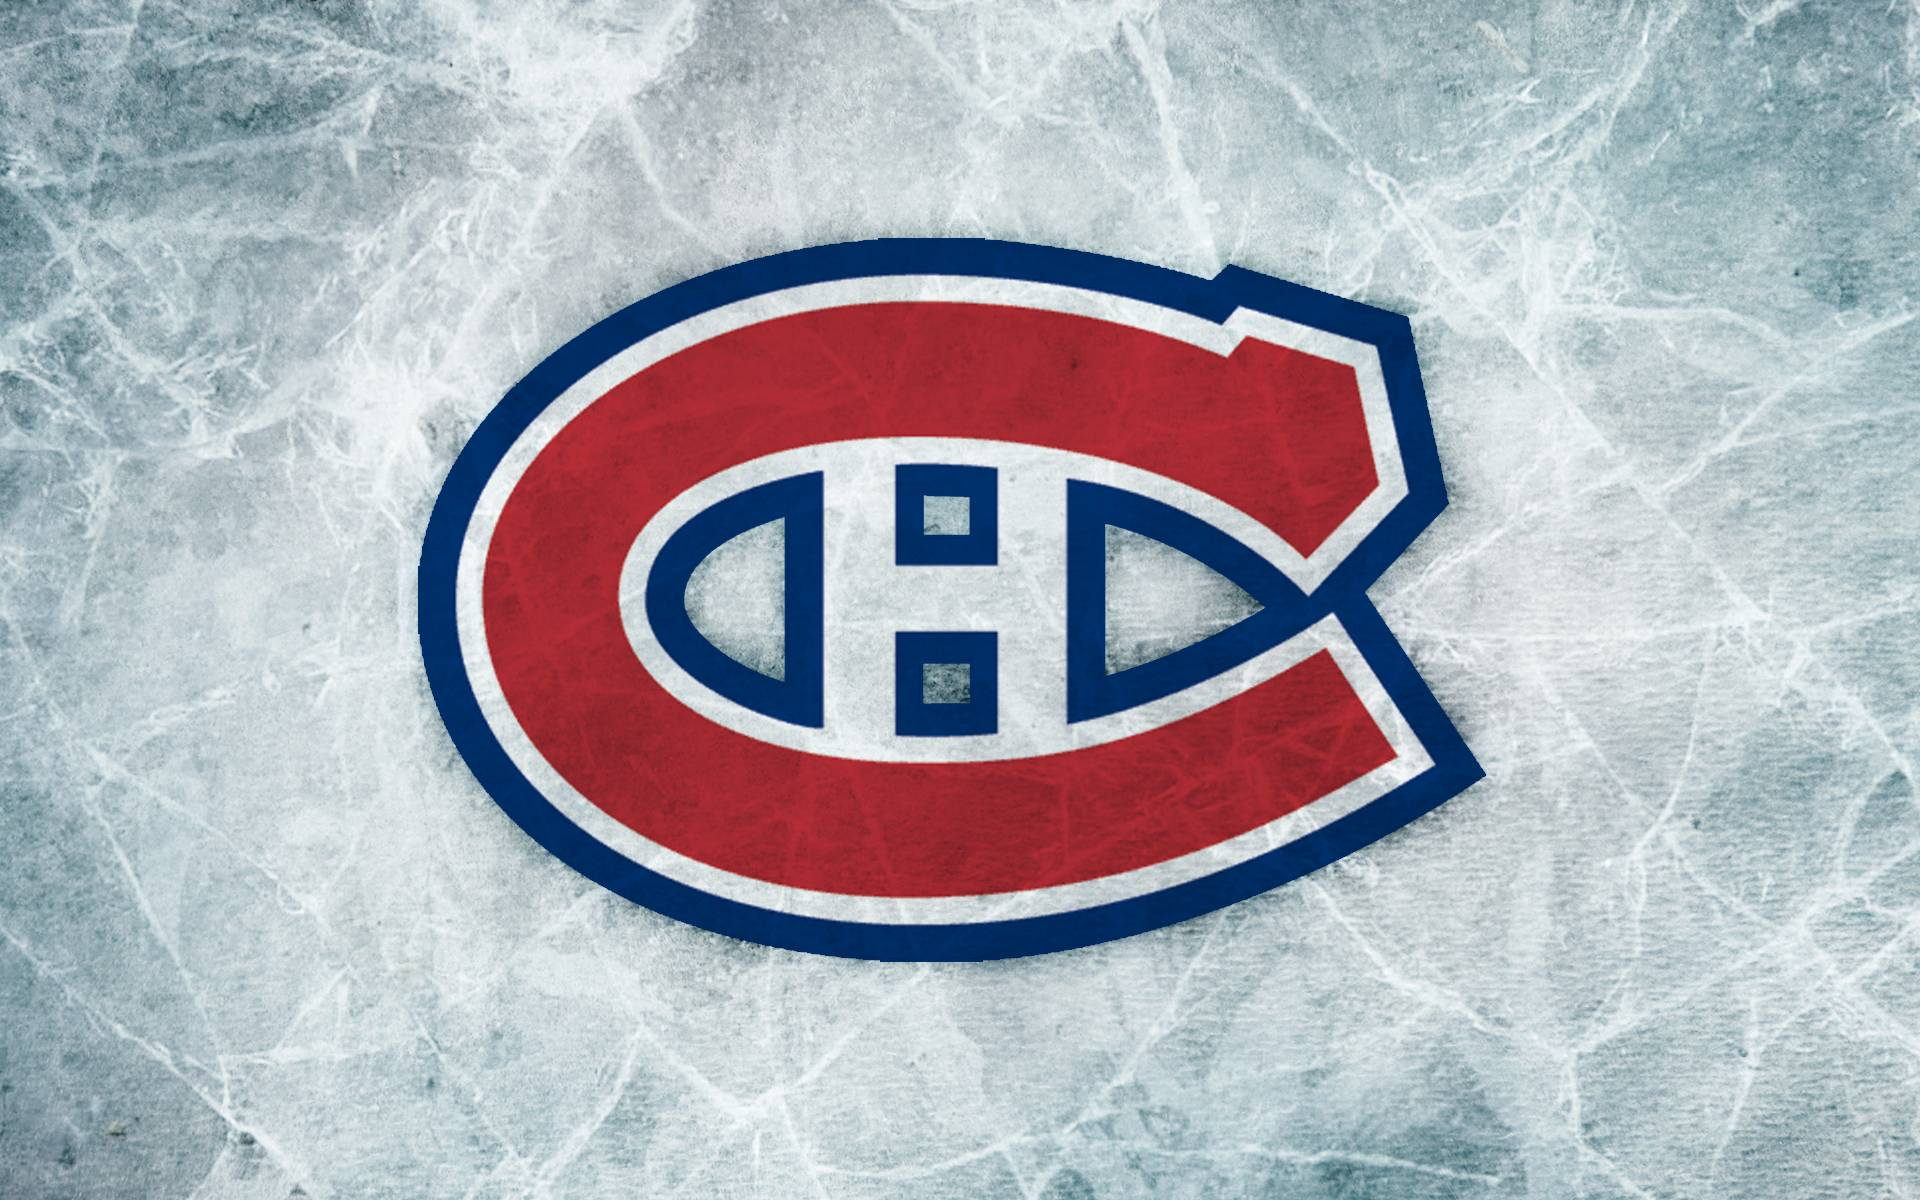 Montreal Canadiens Montreal Canadiens Wallpapers Wallpaper Cave